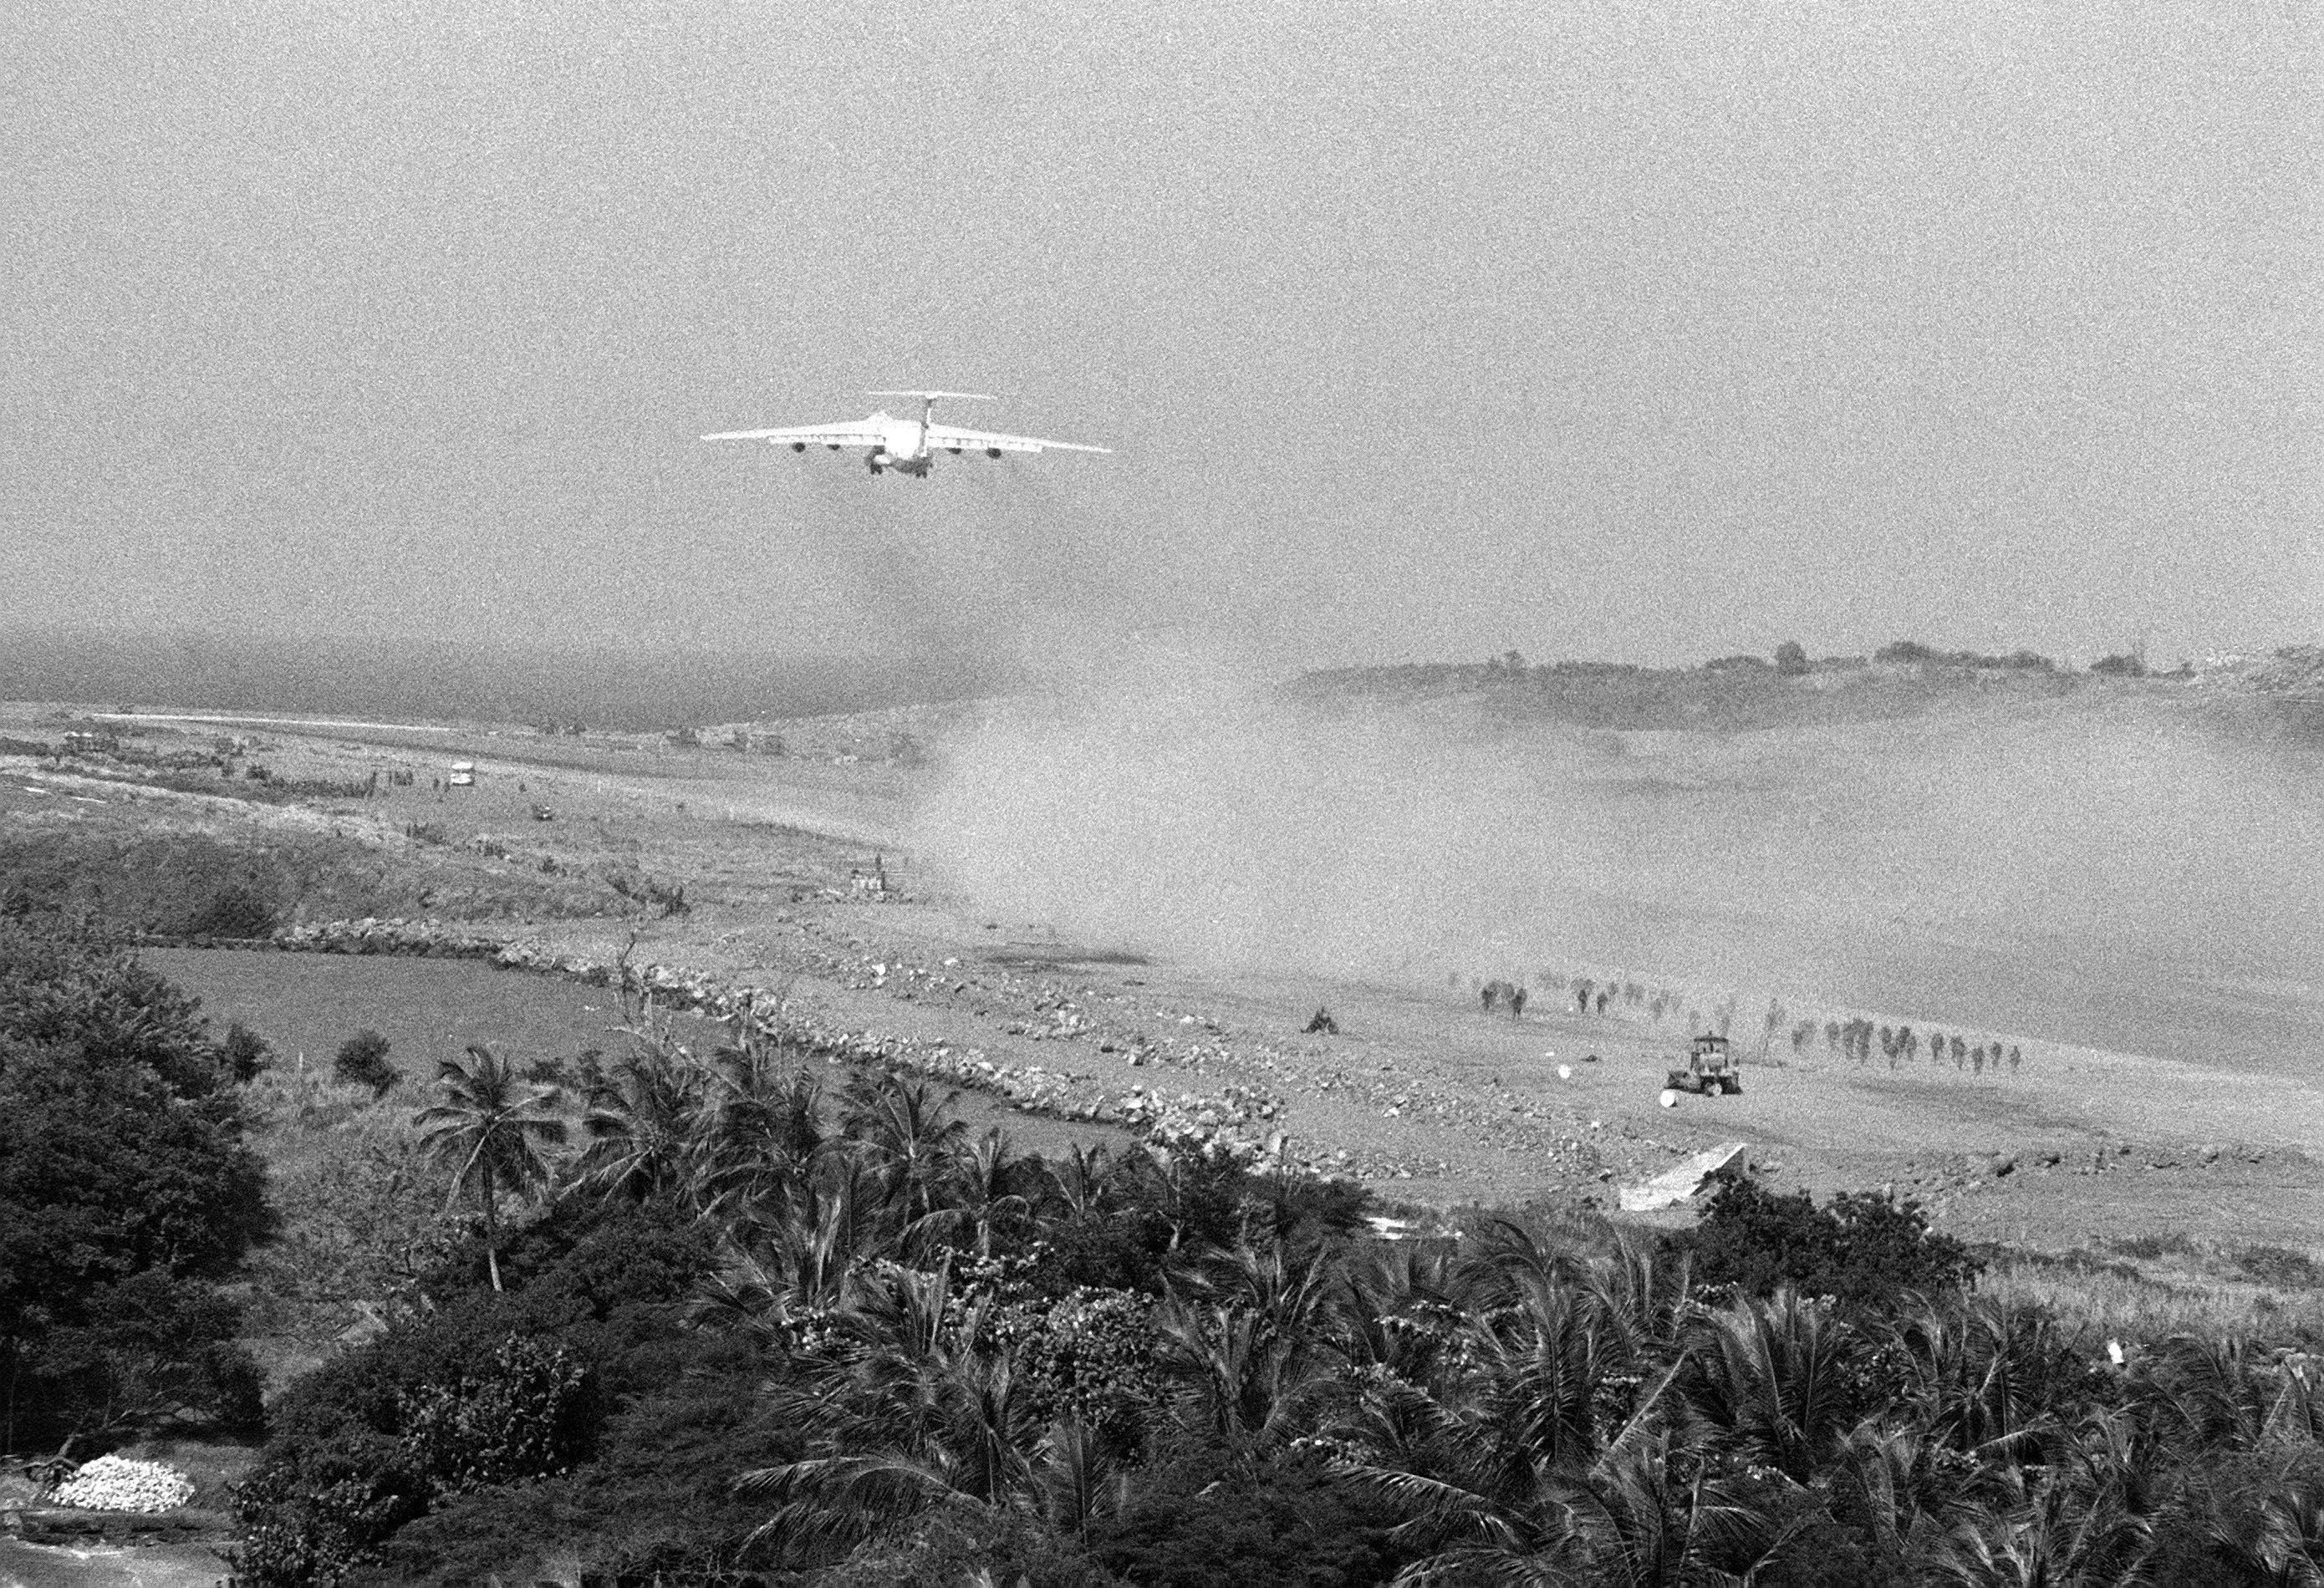 A C-141B Starlifter aircraft takes off from Point Salines Airfield runway during the multiservice, multinational Operation URGENT FURY